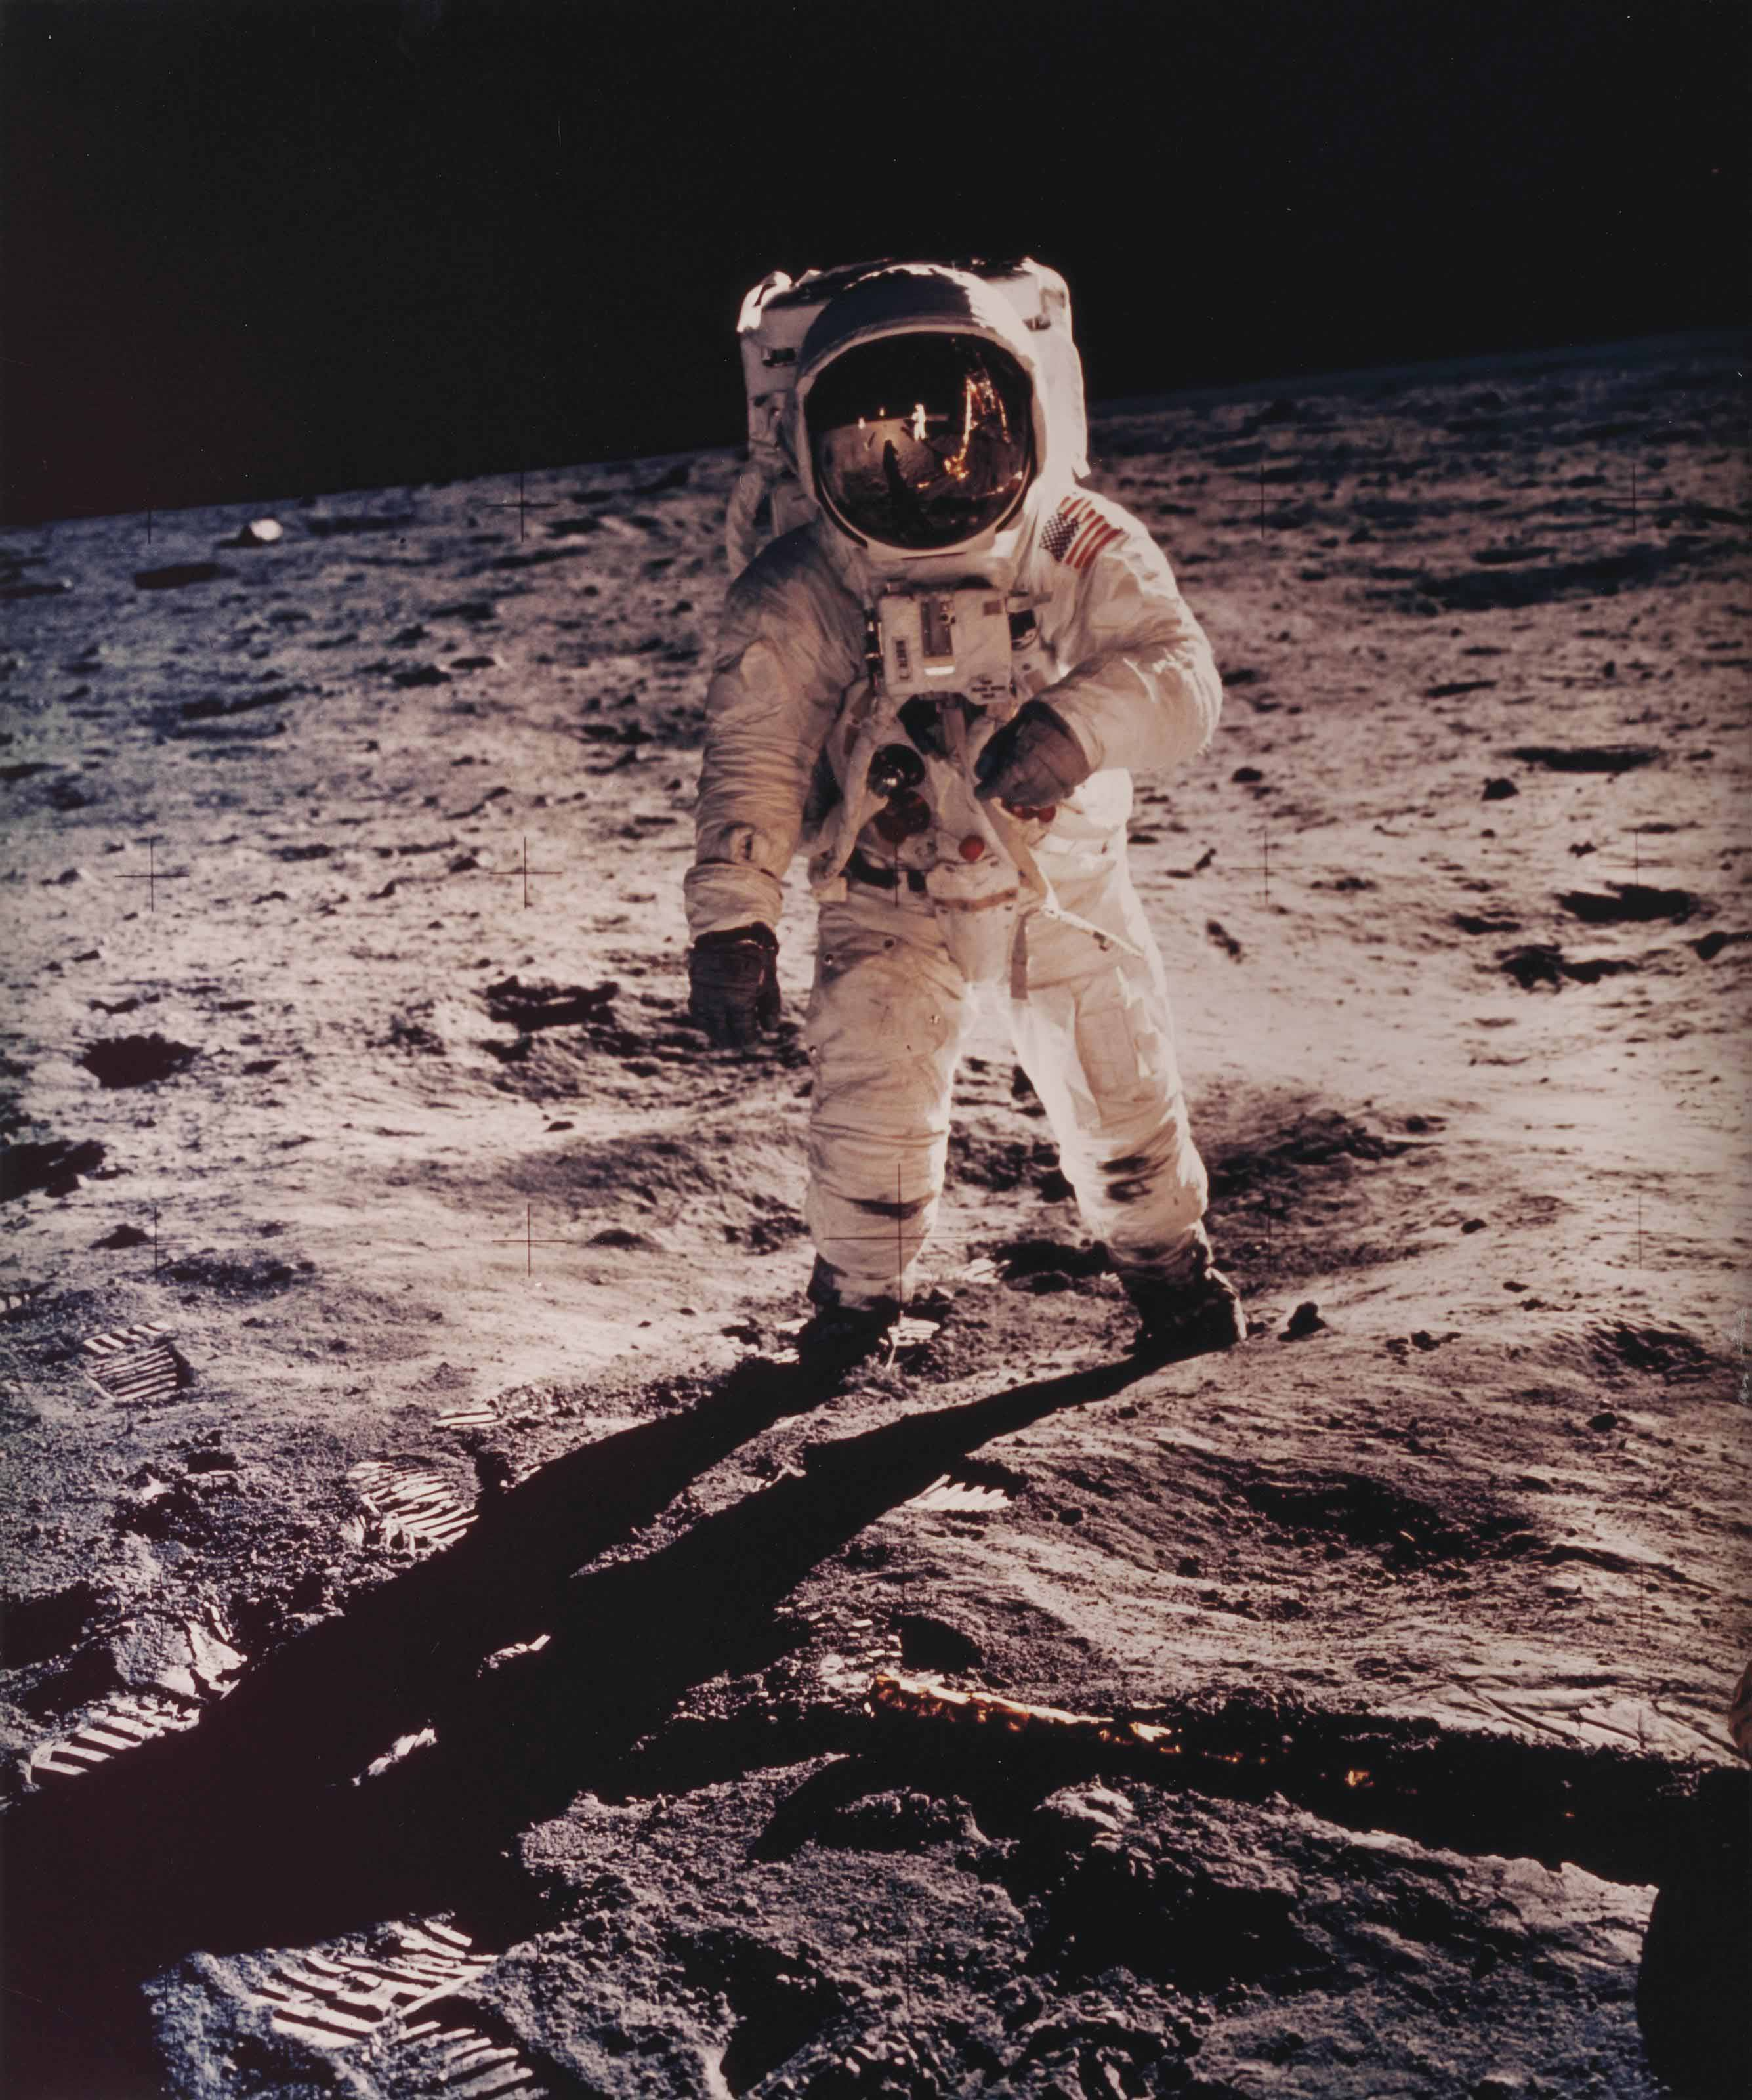 NEIL ARMSTRONG (1930-2012) for